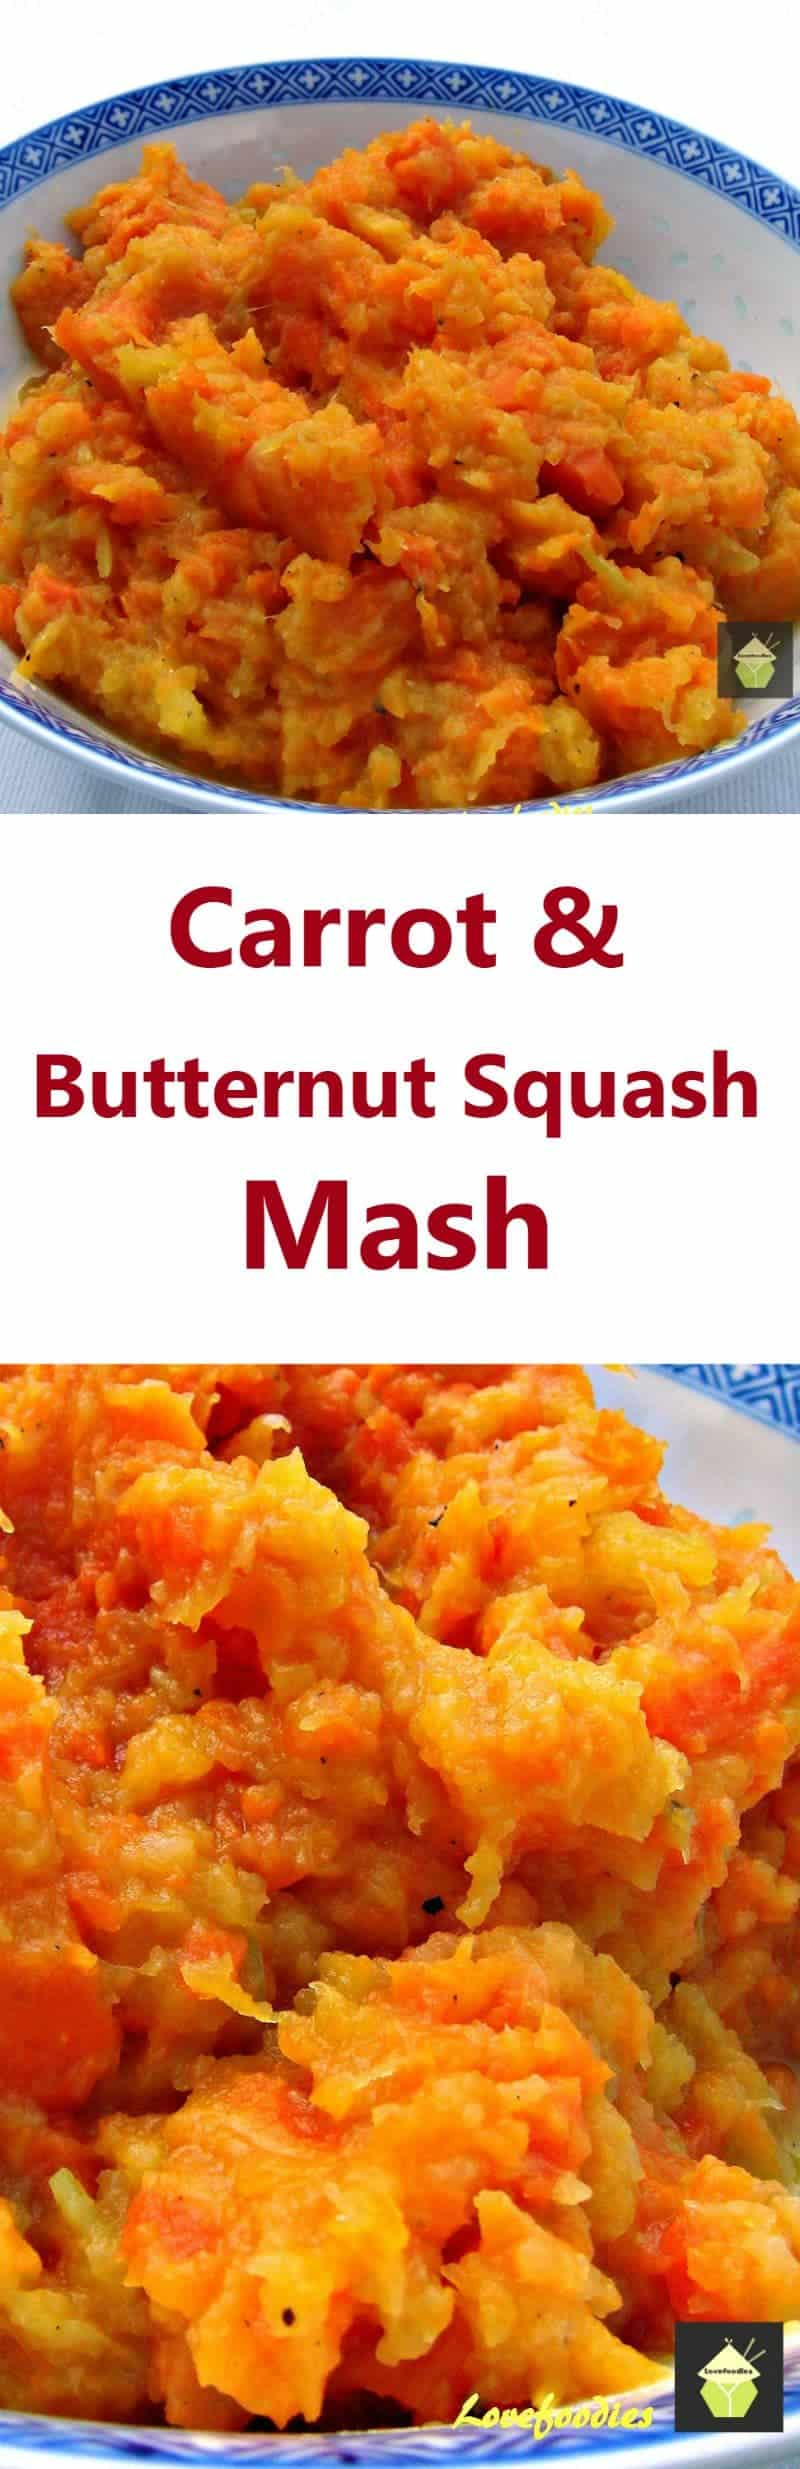 Easy Carrot and Butternut Squash Mash A great side dish, quick, easy and very tasty.